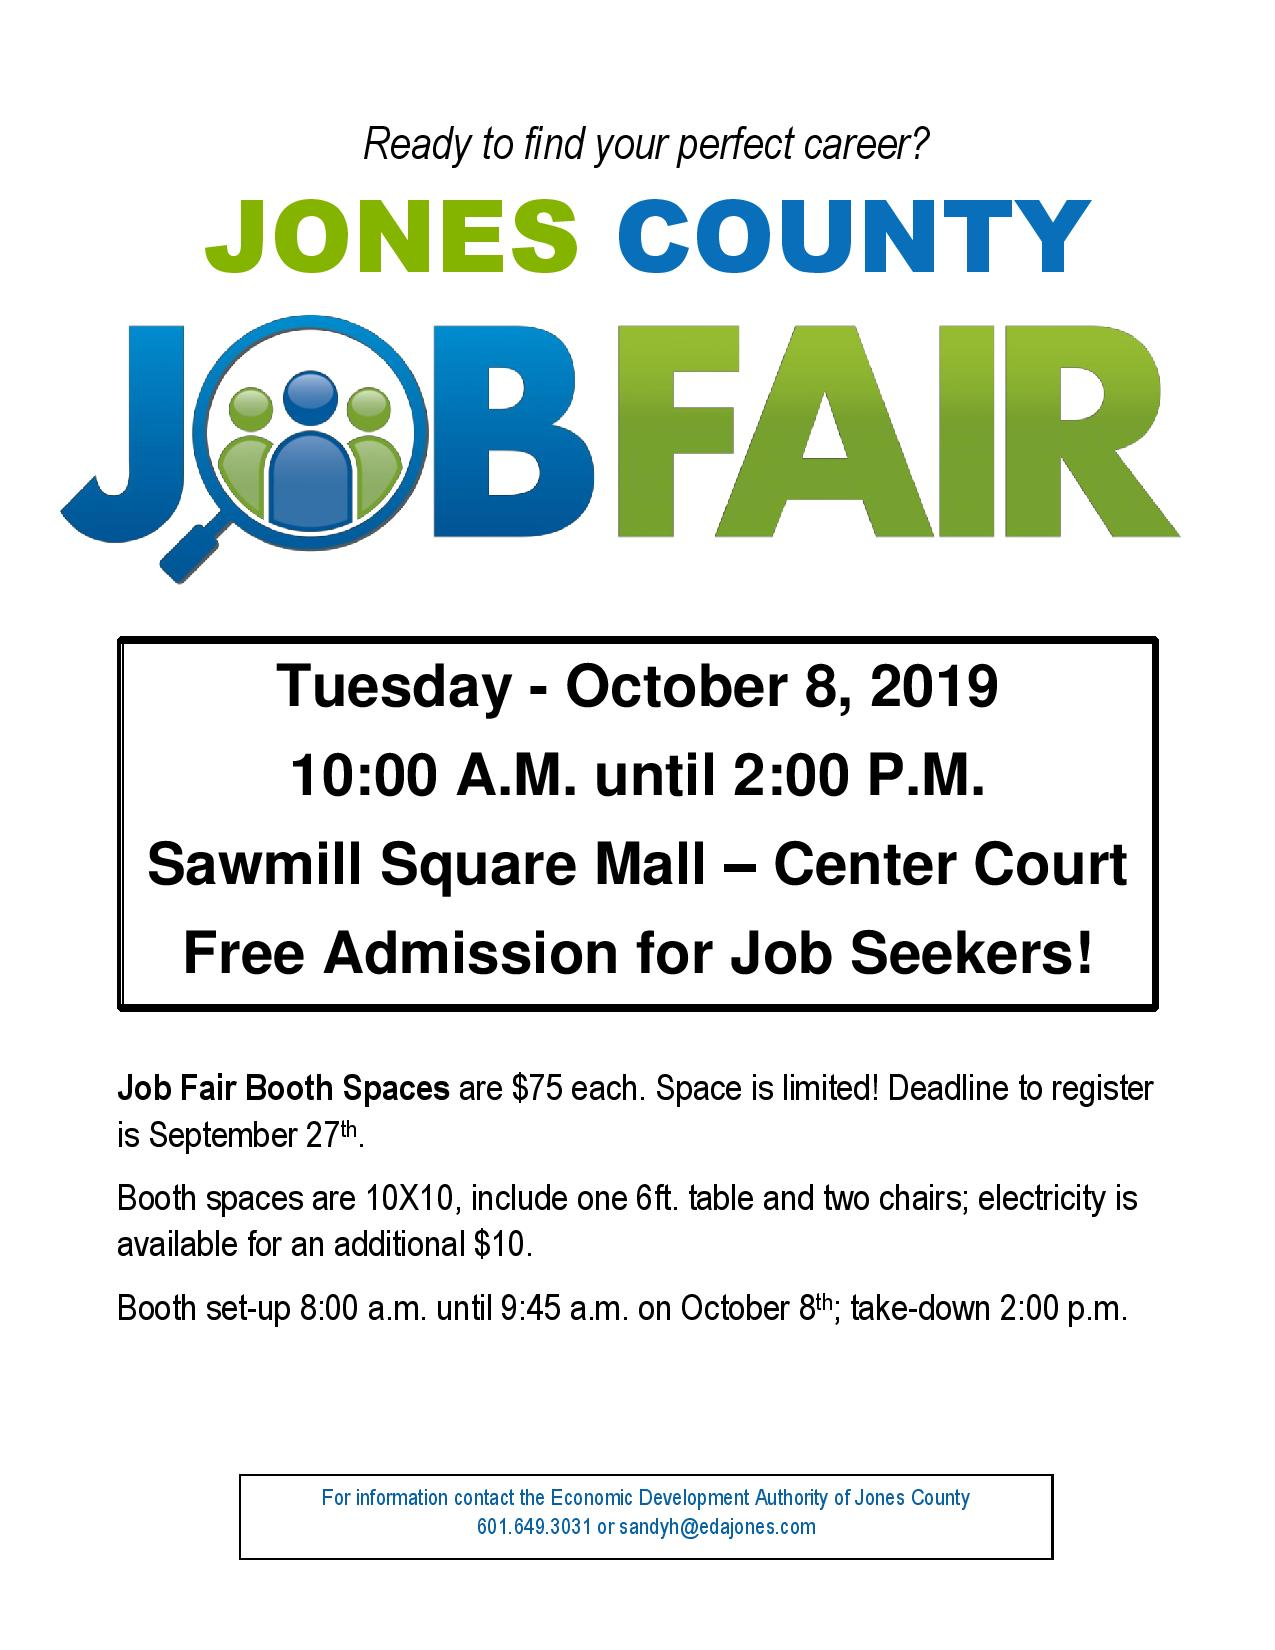 The City of Laurel, Jones County Job Fair